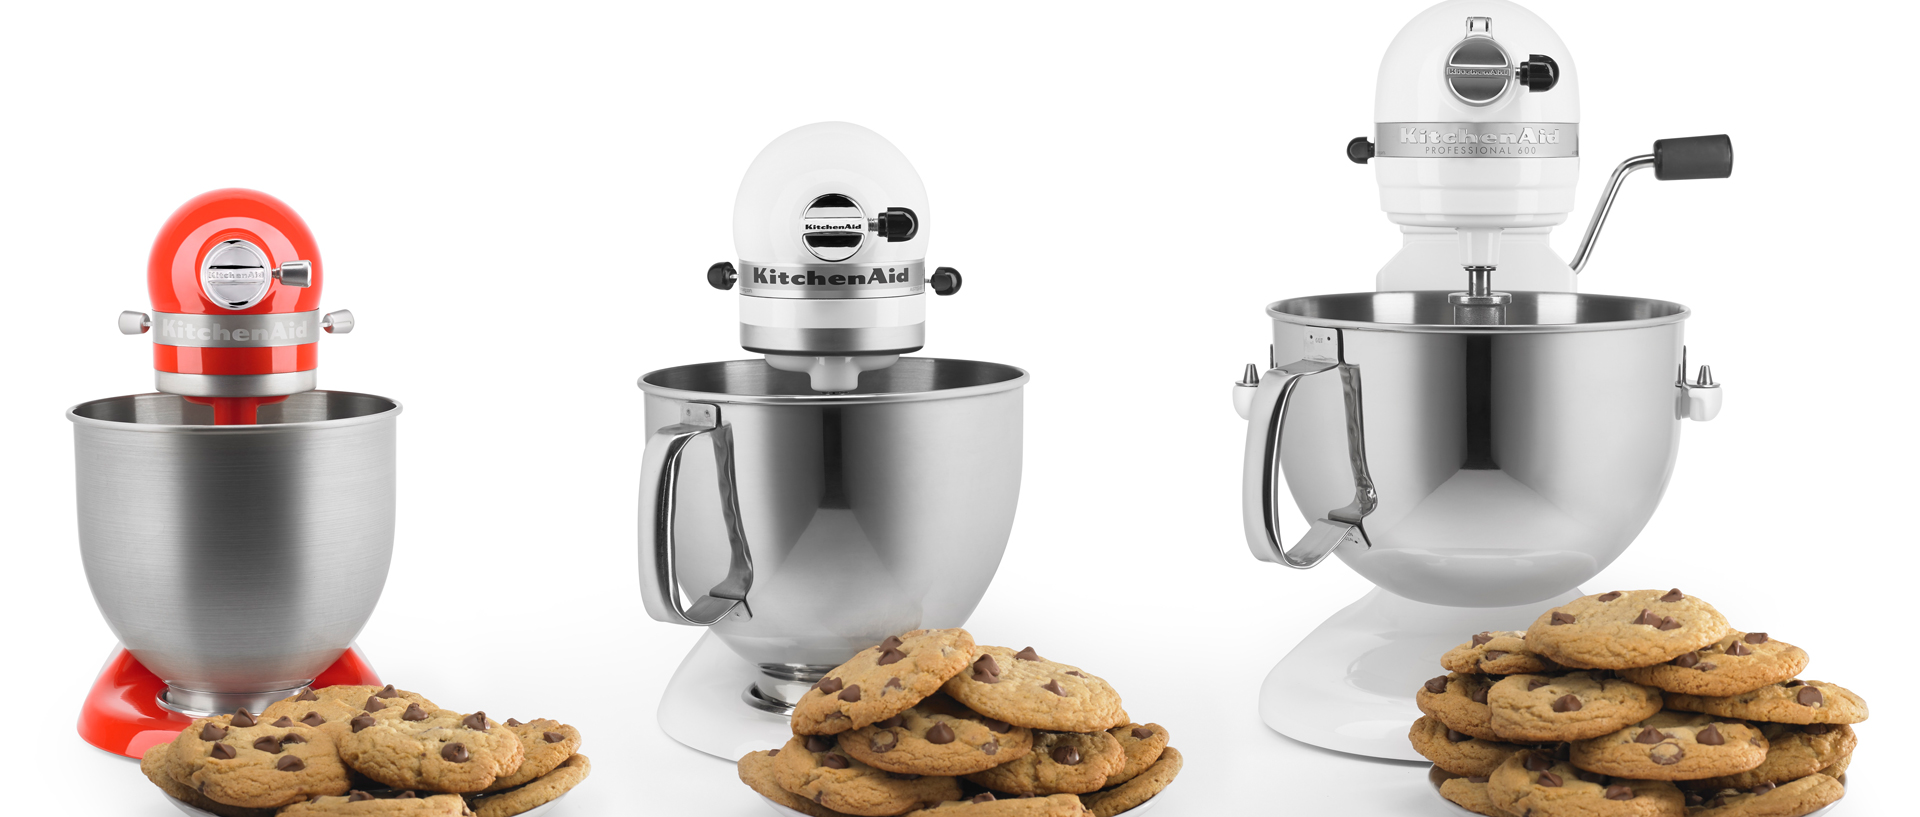 Kitchenaid Countertop Appliances appliances shrink to fit smaller kitchens - consumer reports